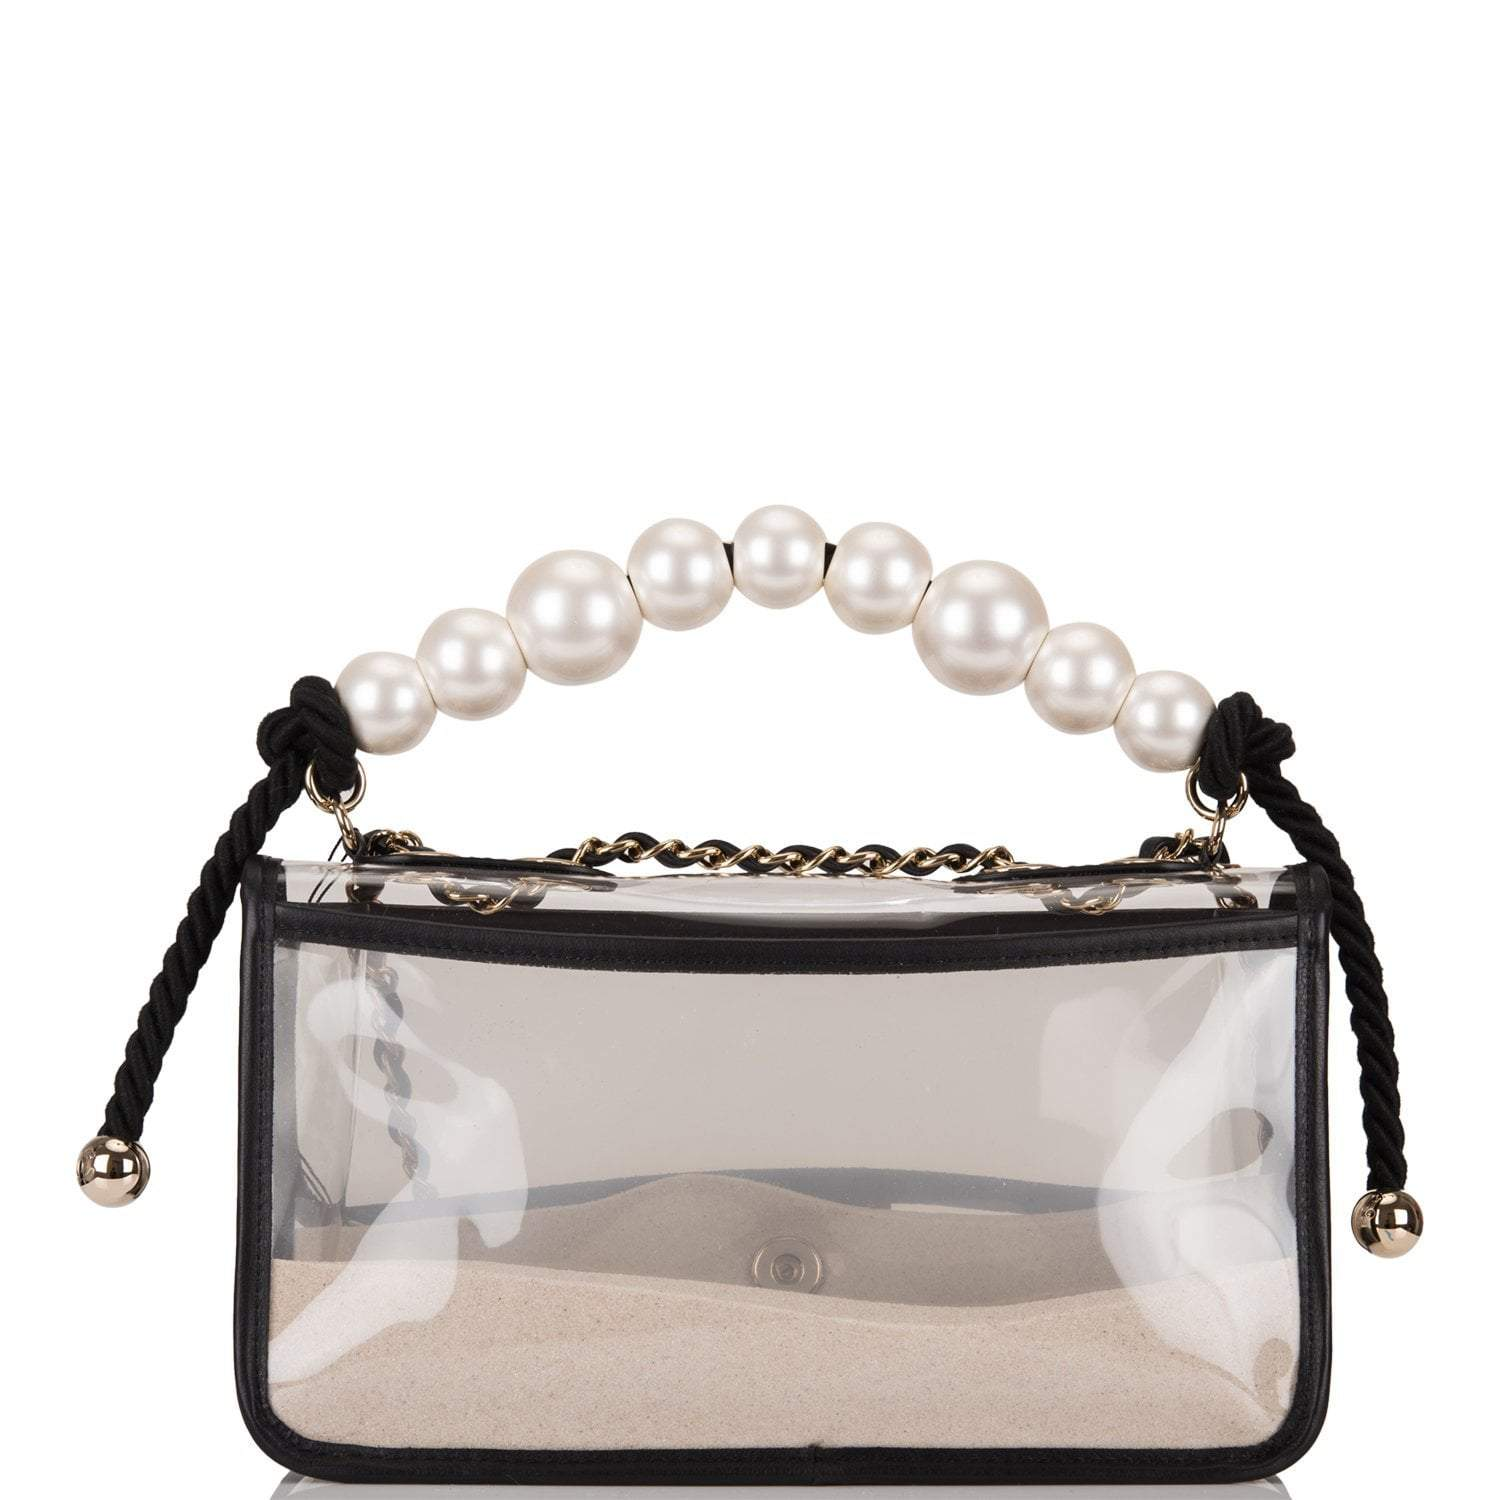 24d52cb52 Chanel Transparent